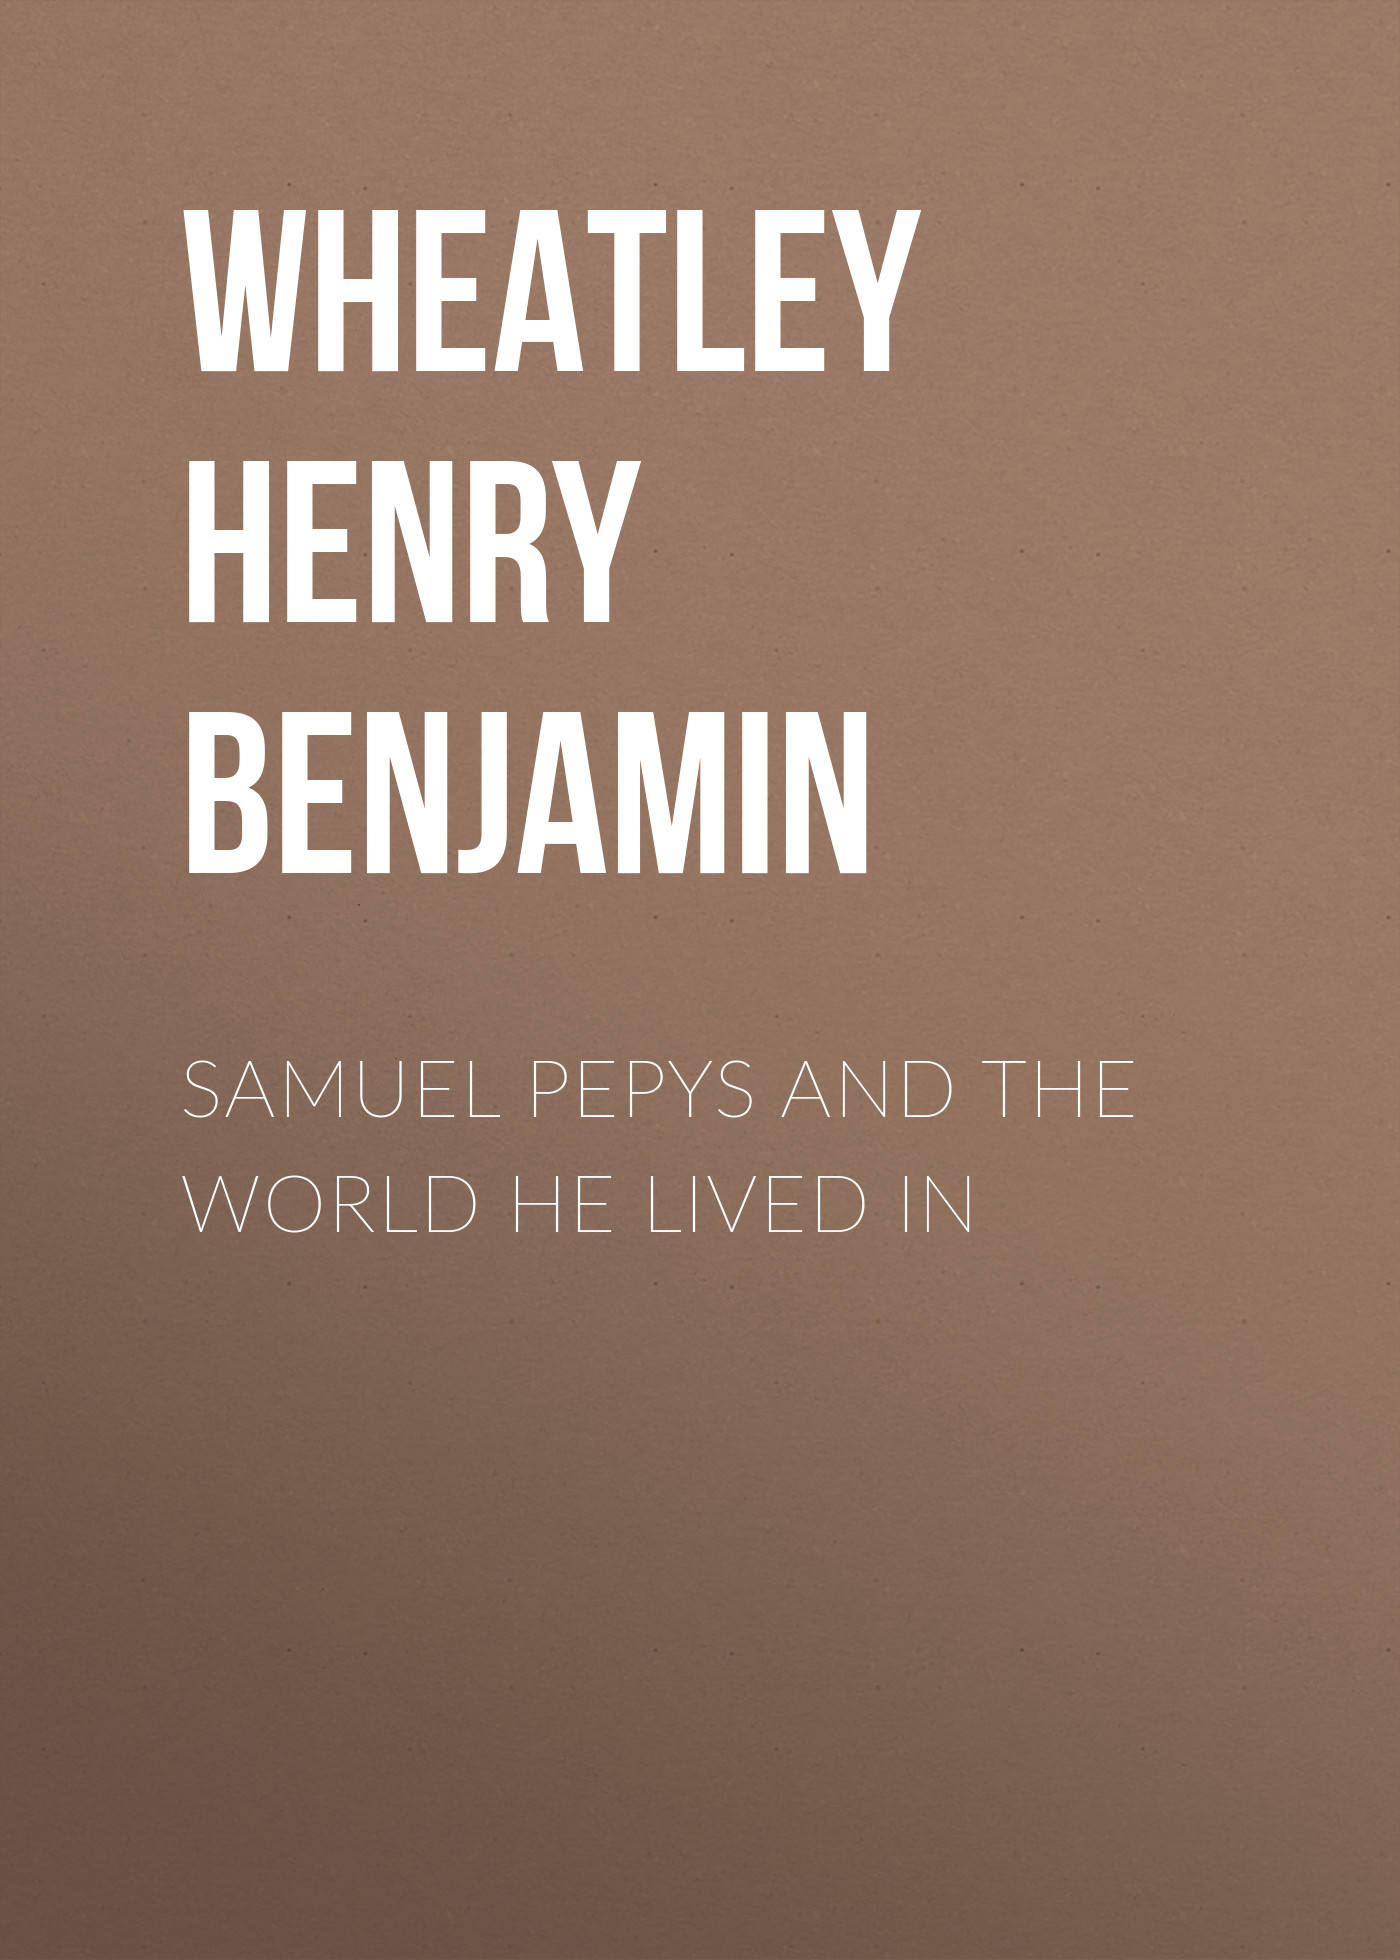 Фото - Wheatley Henry Benjamin Samuel Pepys and the World He Lived In samuel mccomb faith the greatest power in the world